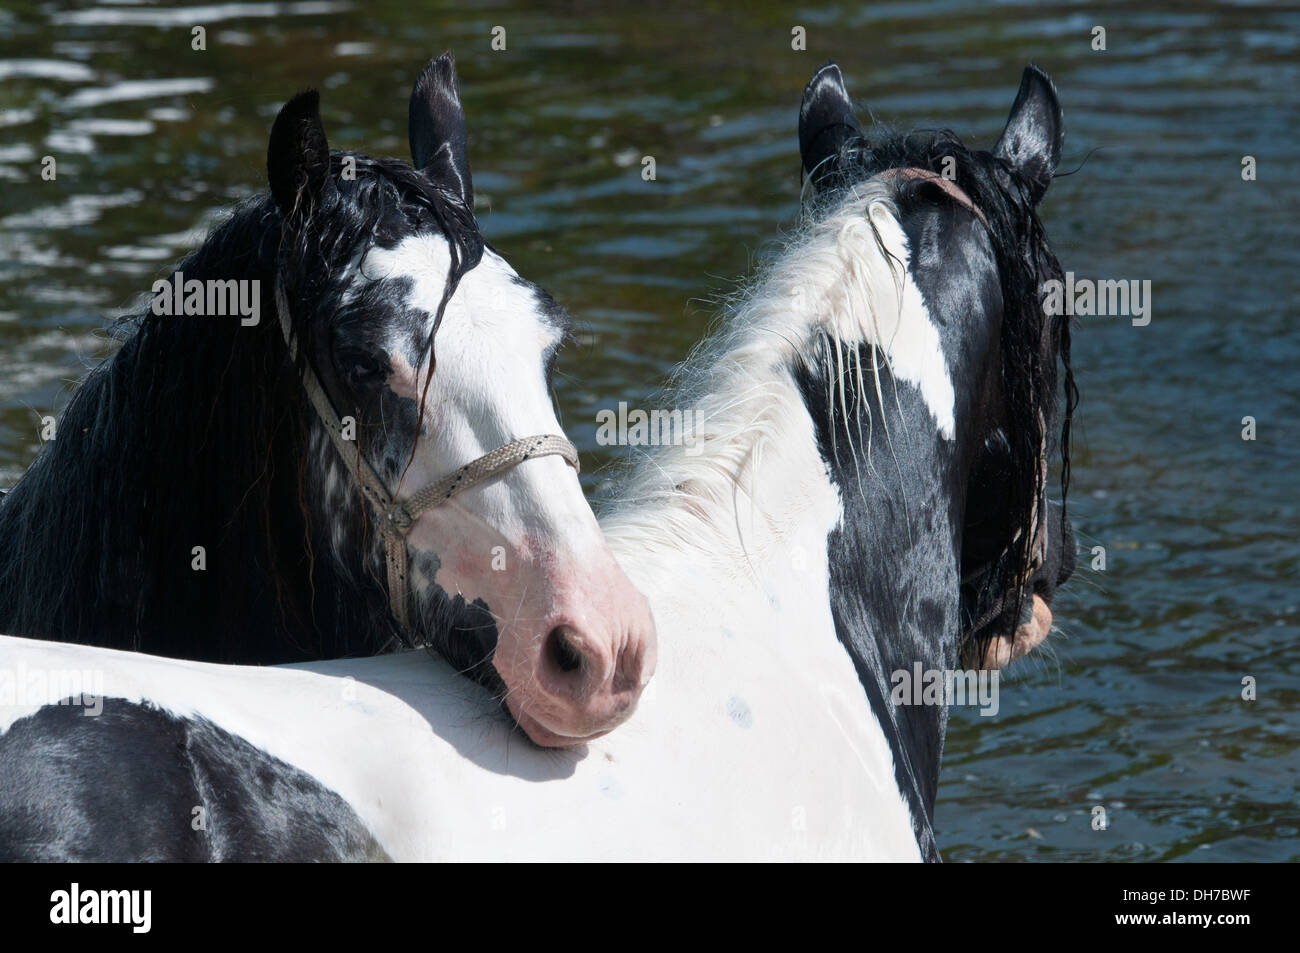 Travellers displaying their horses at the annual Appleby horse fair, Cumbria, UK - Stock Image